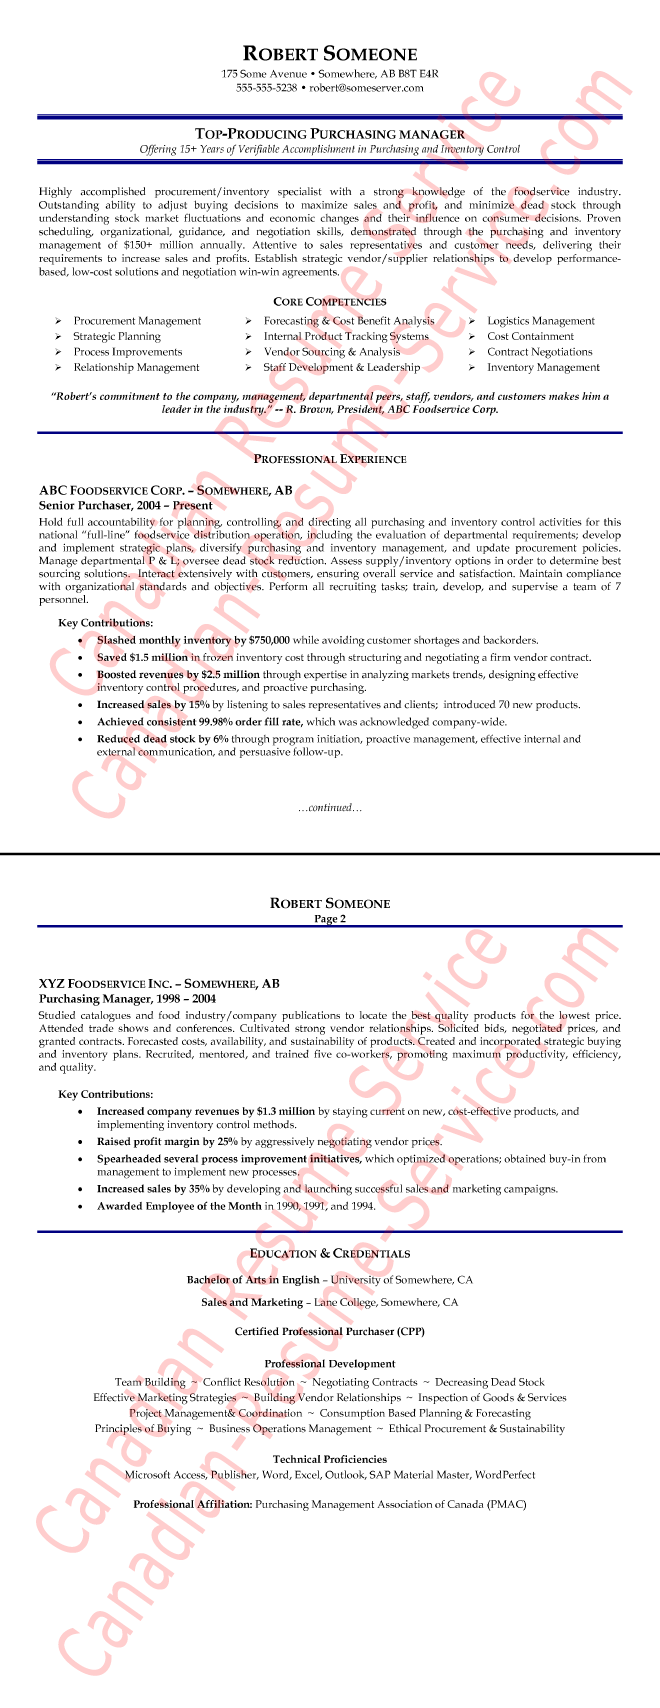 Purchasing Manager Resume Example U2013 Procurement Executive Sample  Supply Chain Management Resume